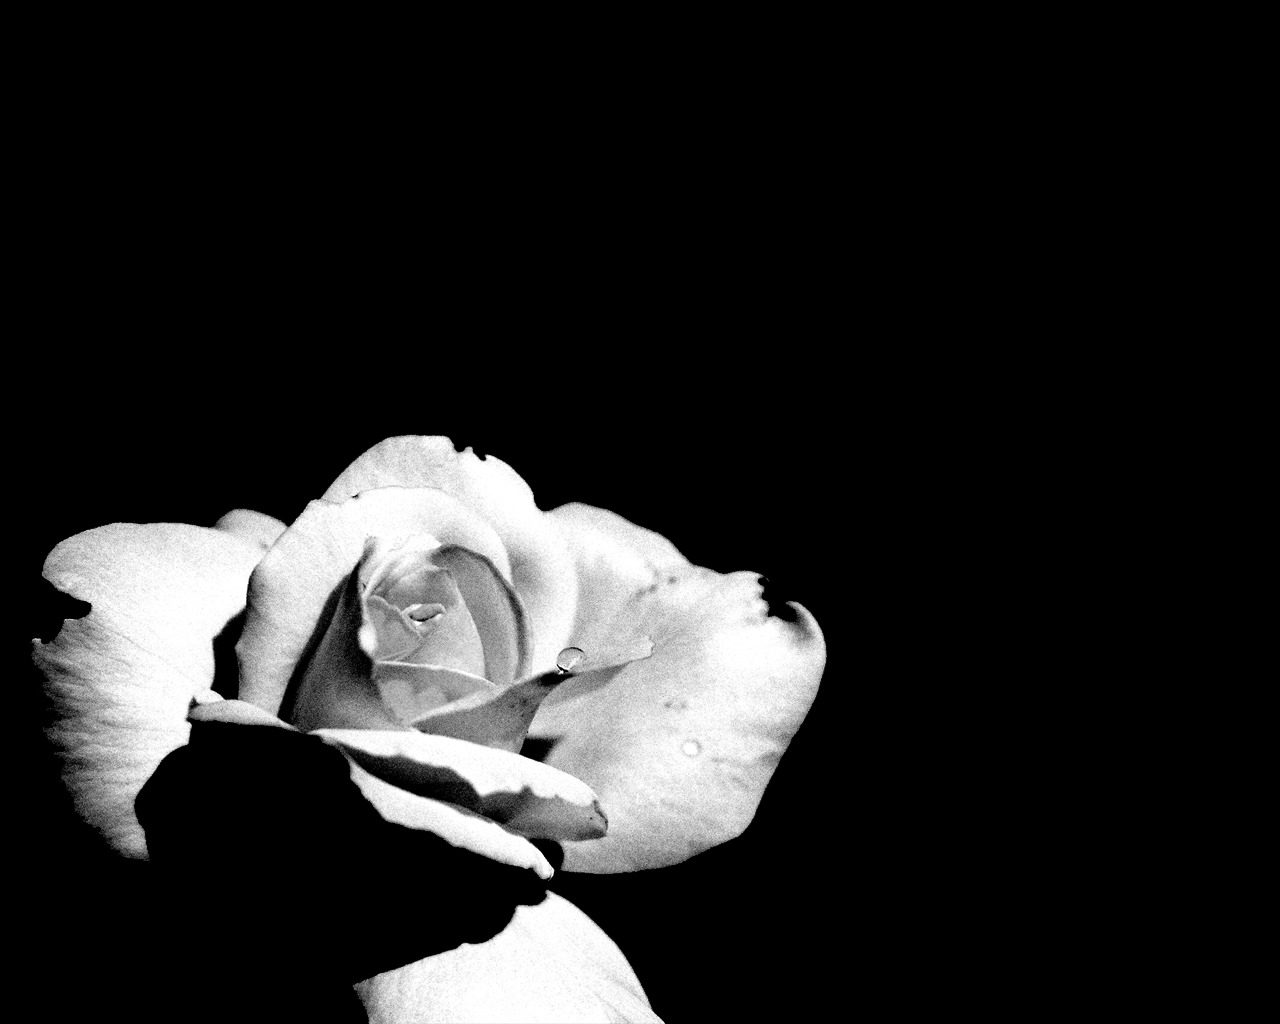 Free Download Black And White Rose Flower Wallpaper Hd